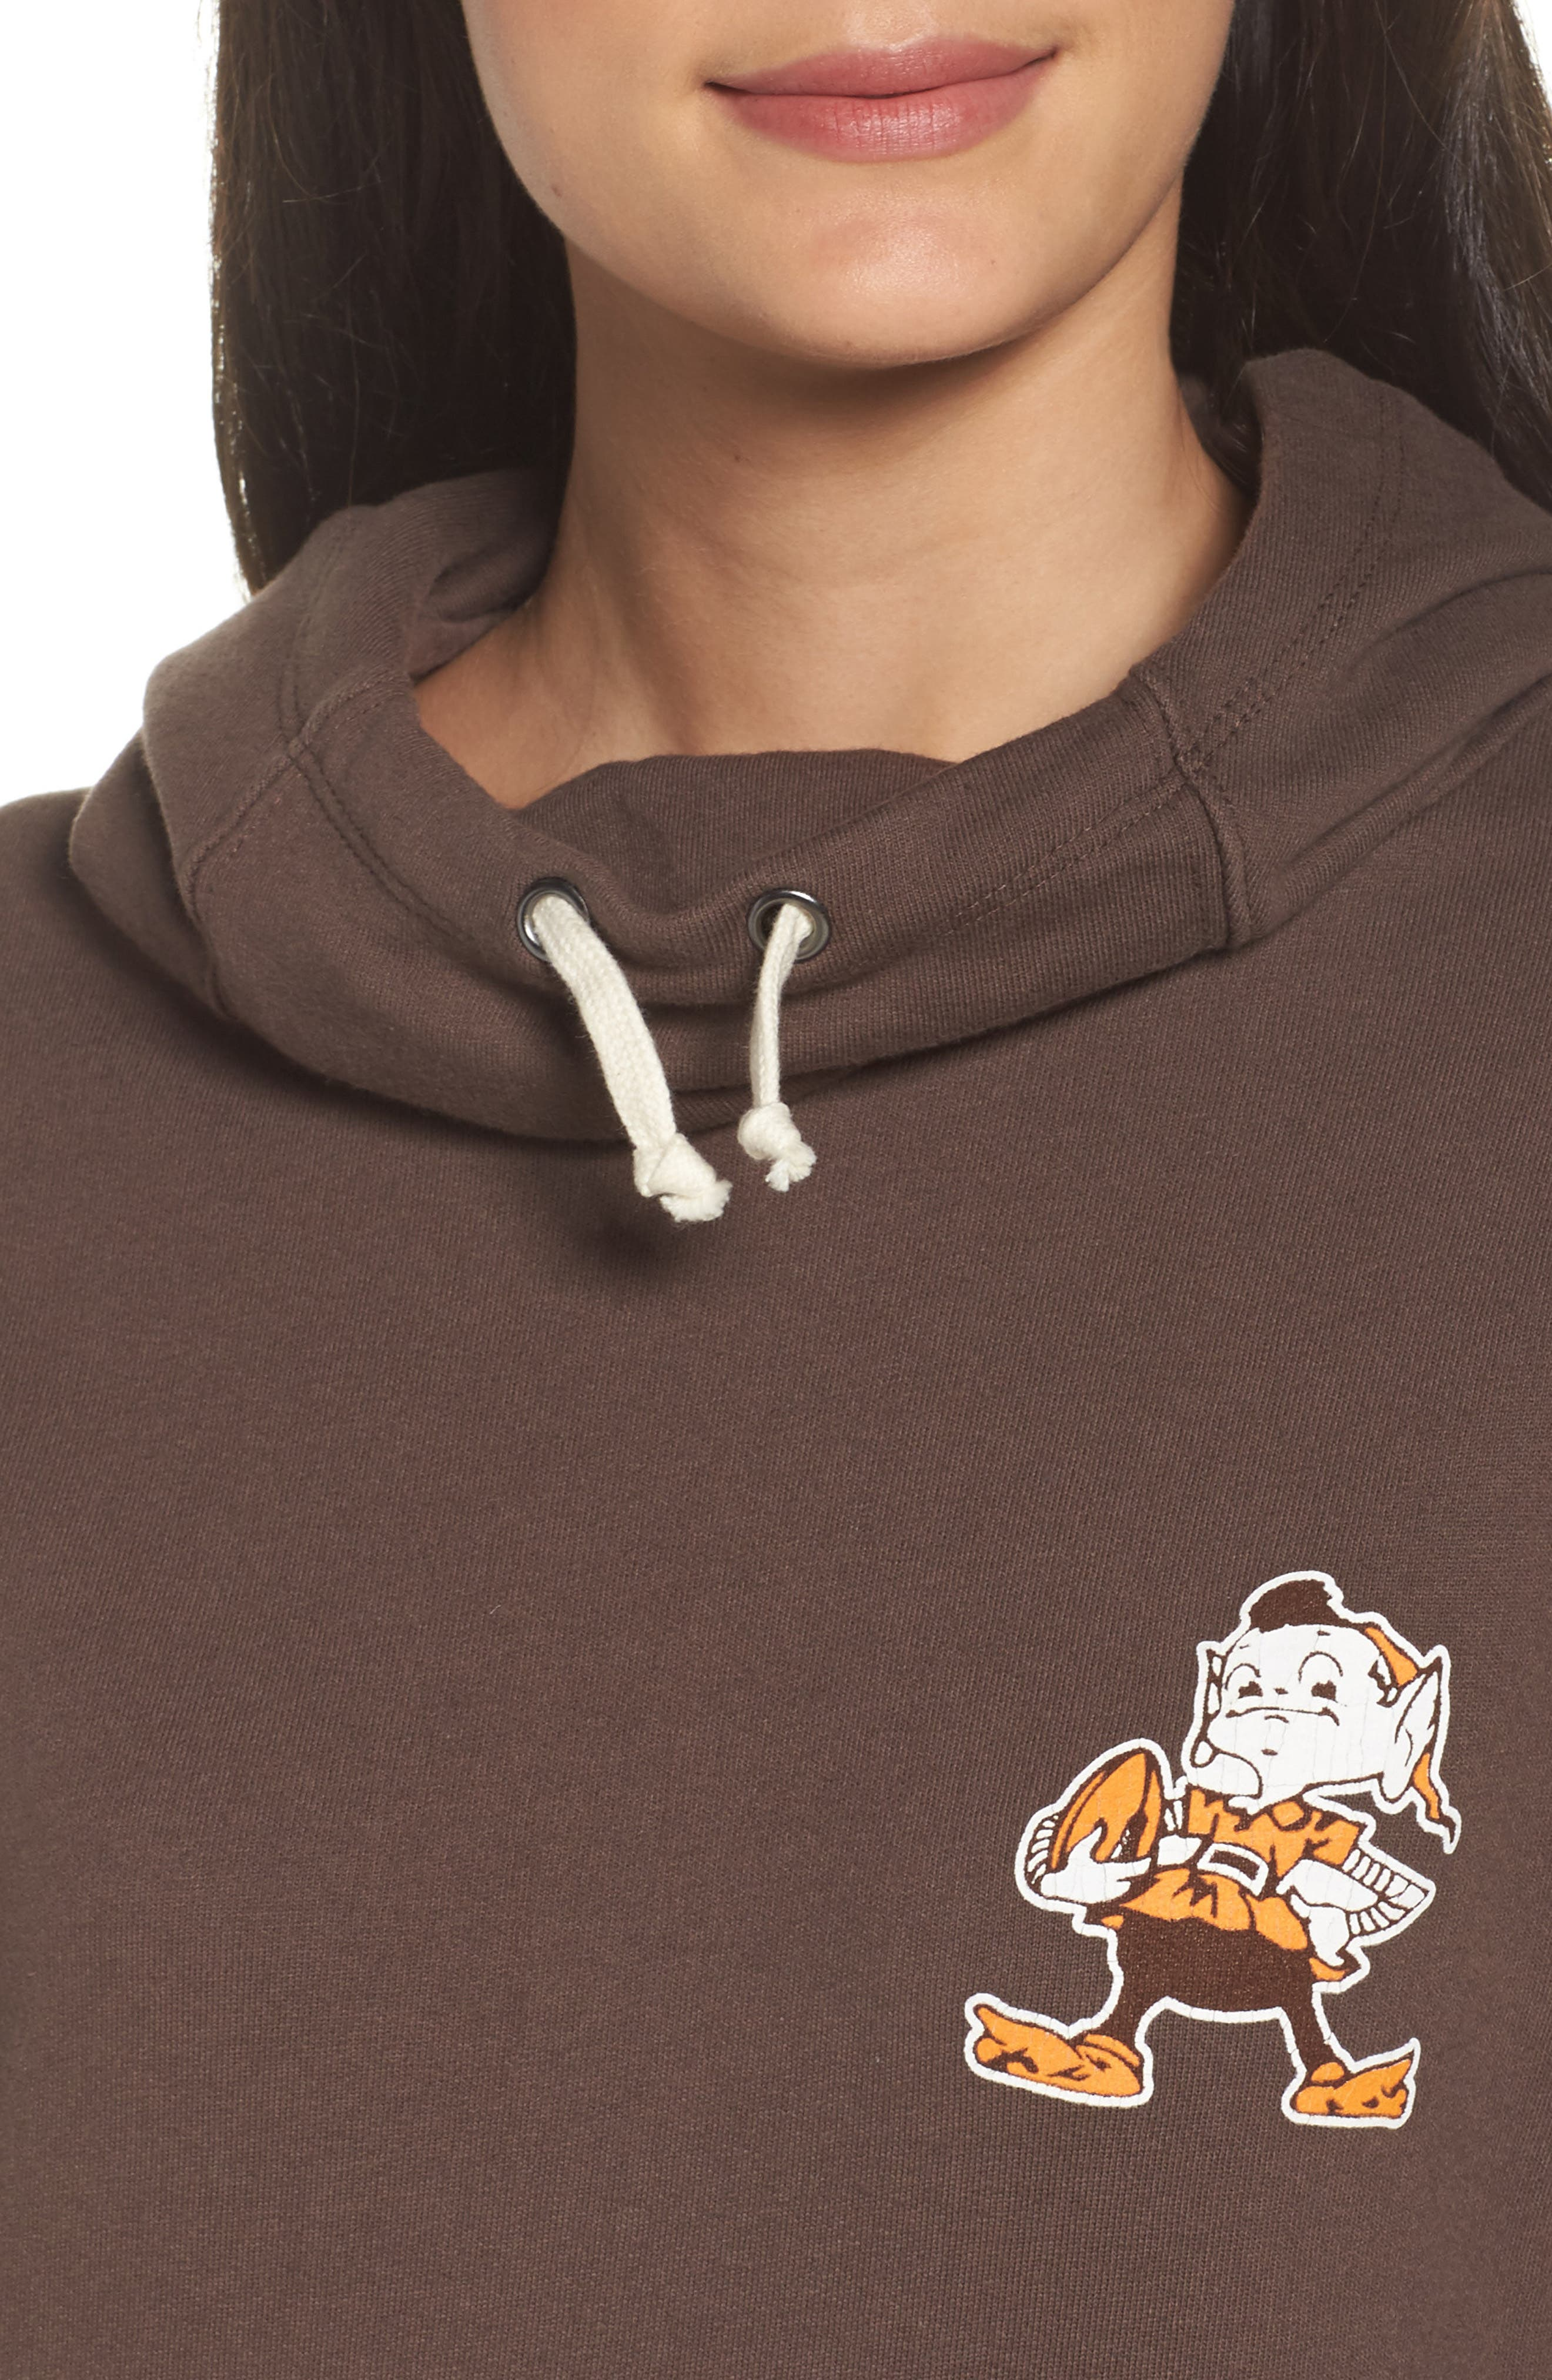 NFL Cleveland Browns Sunday Hoodie,                             Alternate thumbnail 4, color,                             200